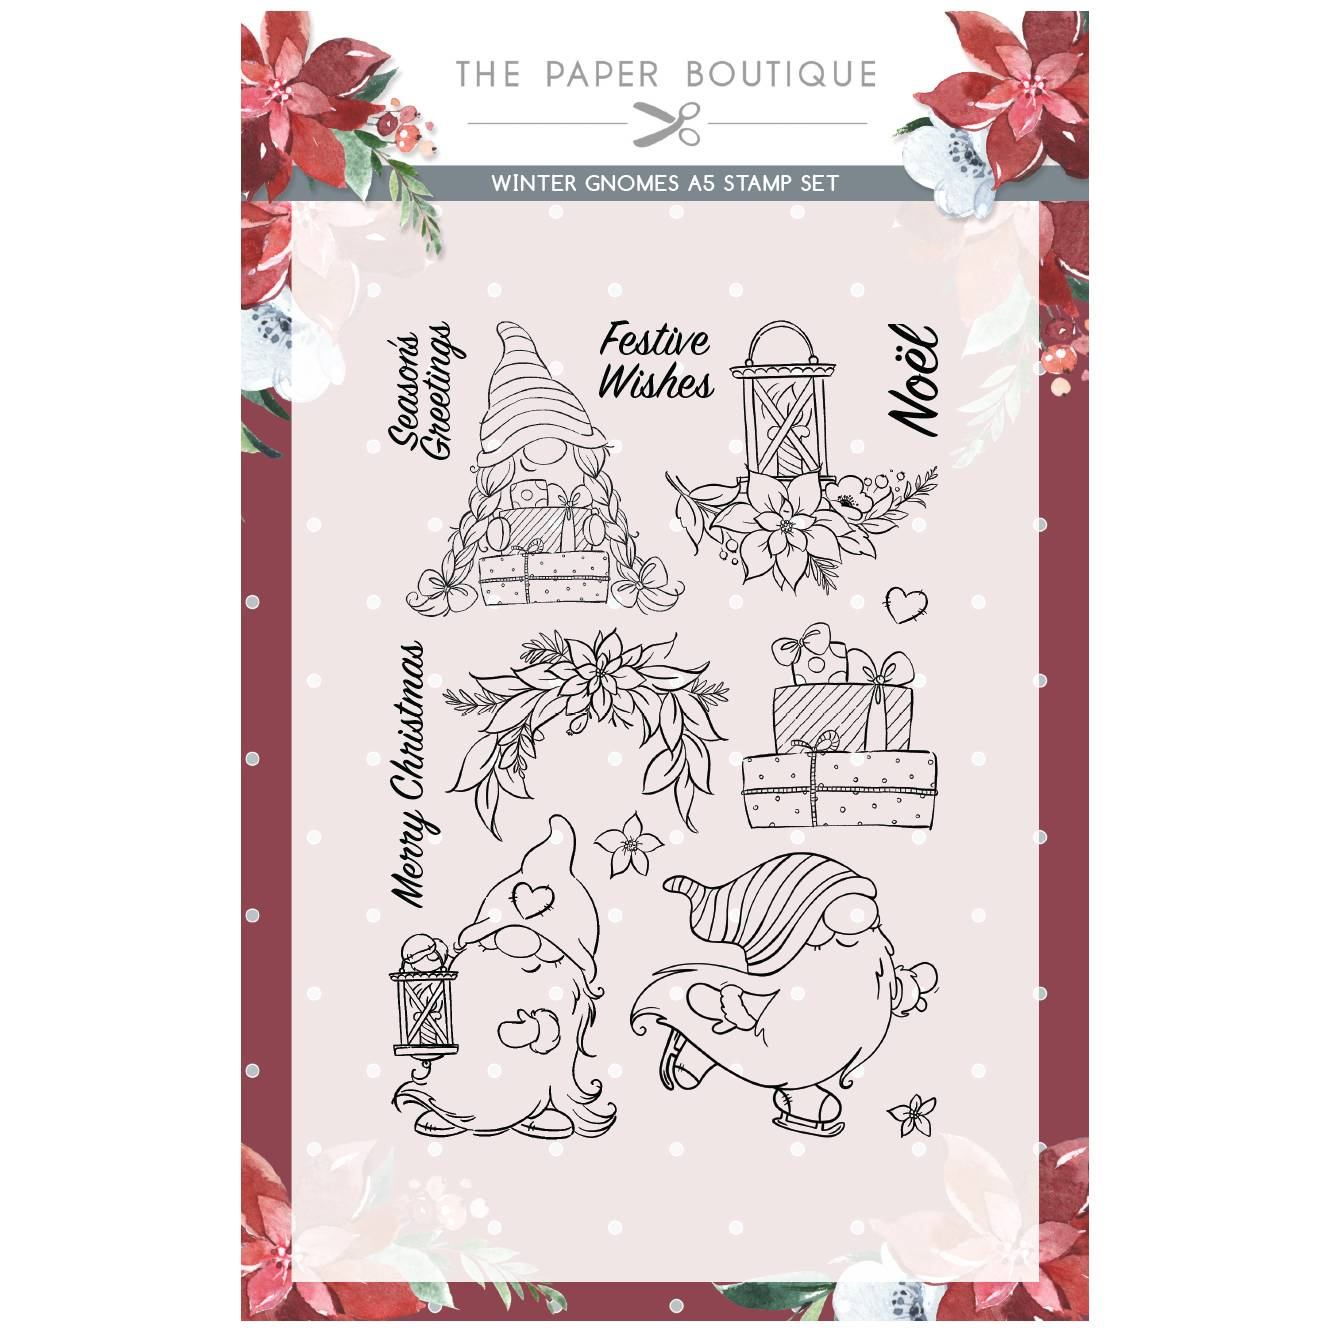 CREATIVE EXPRESSIONS THE PAPER BOUTIQUE WINTER GNOMES A4 PAPER PAD CARD INSERT COLLECTION